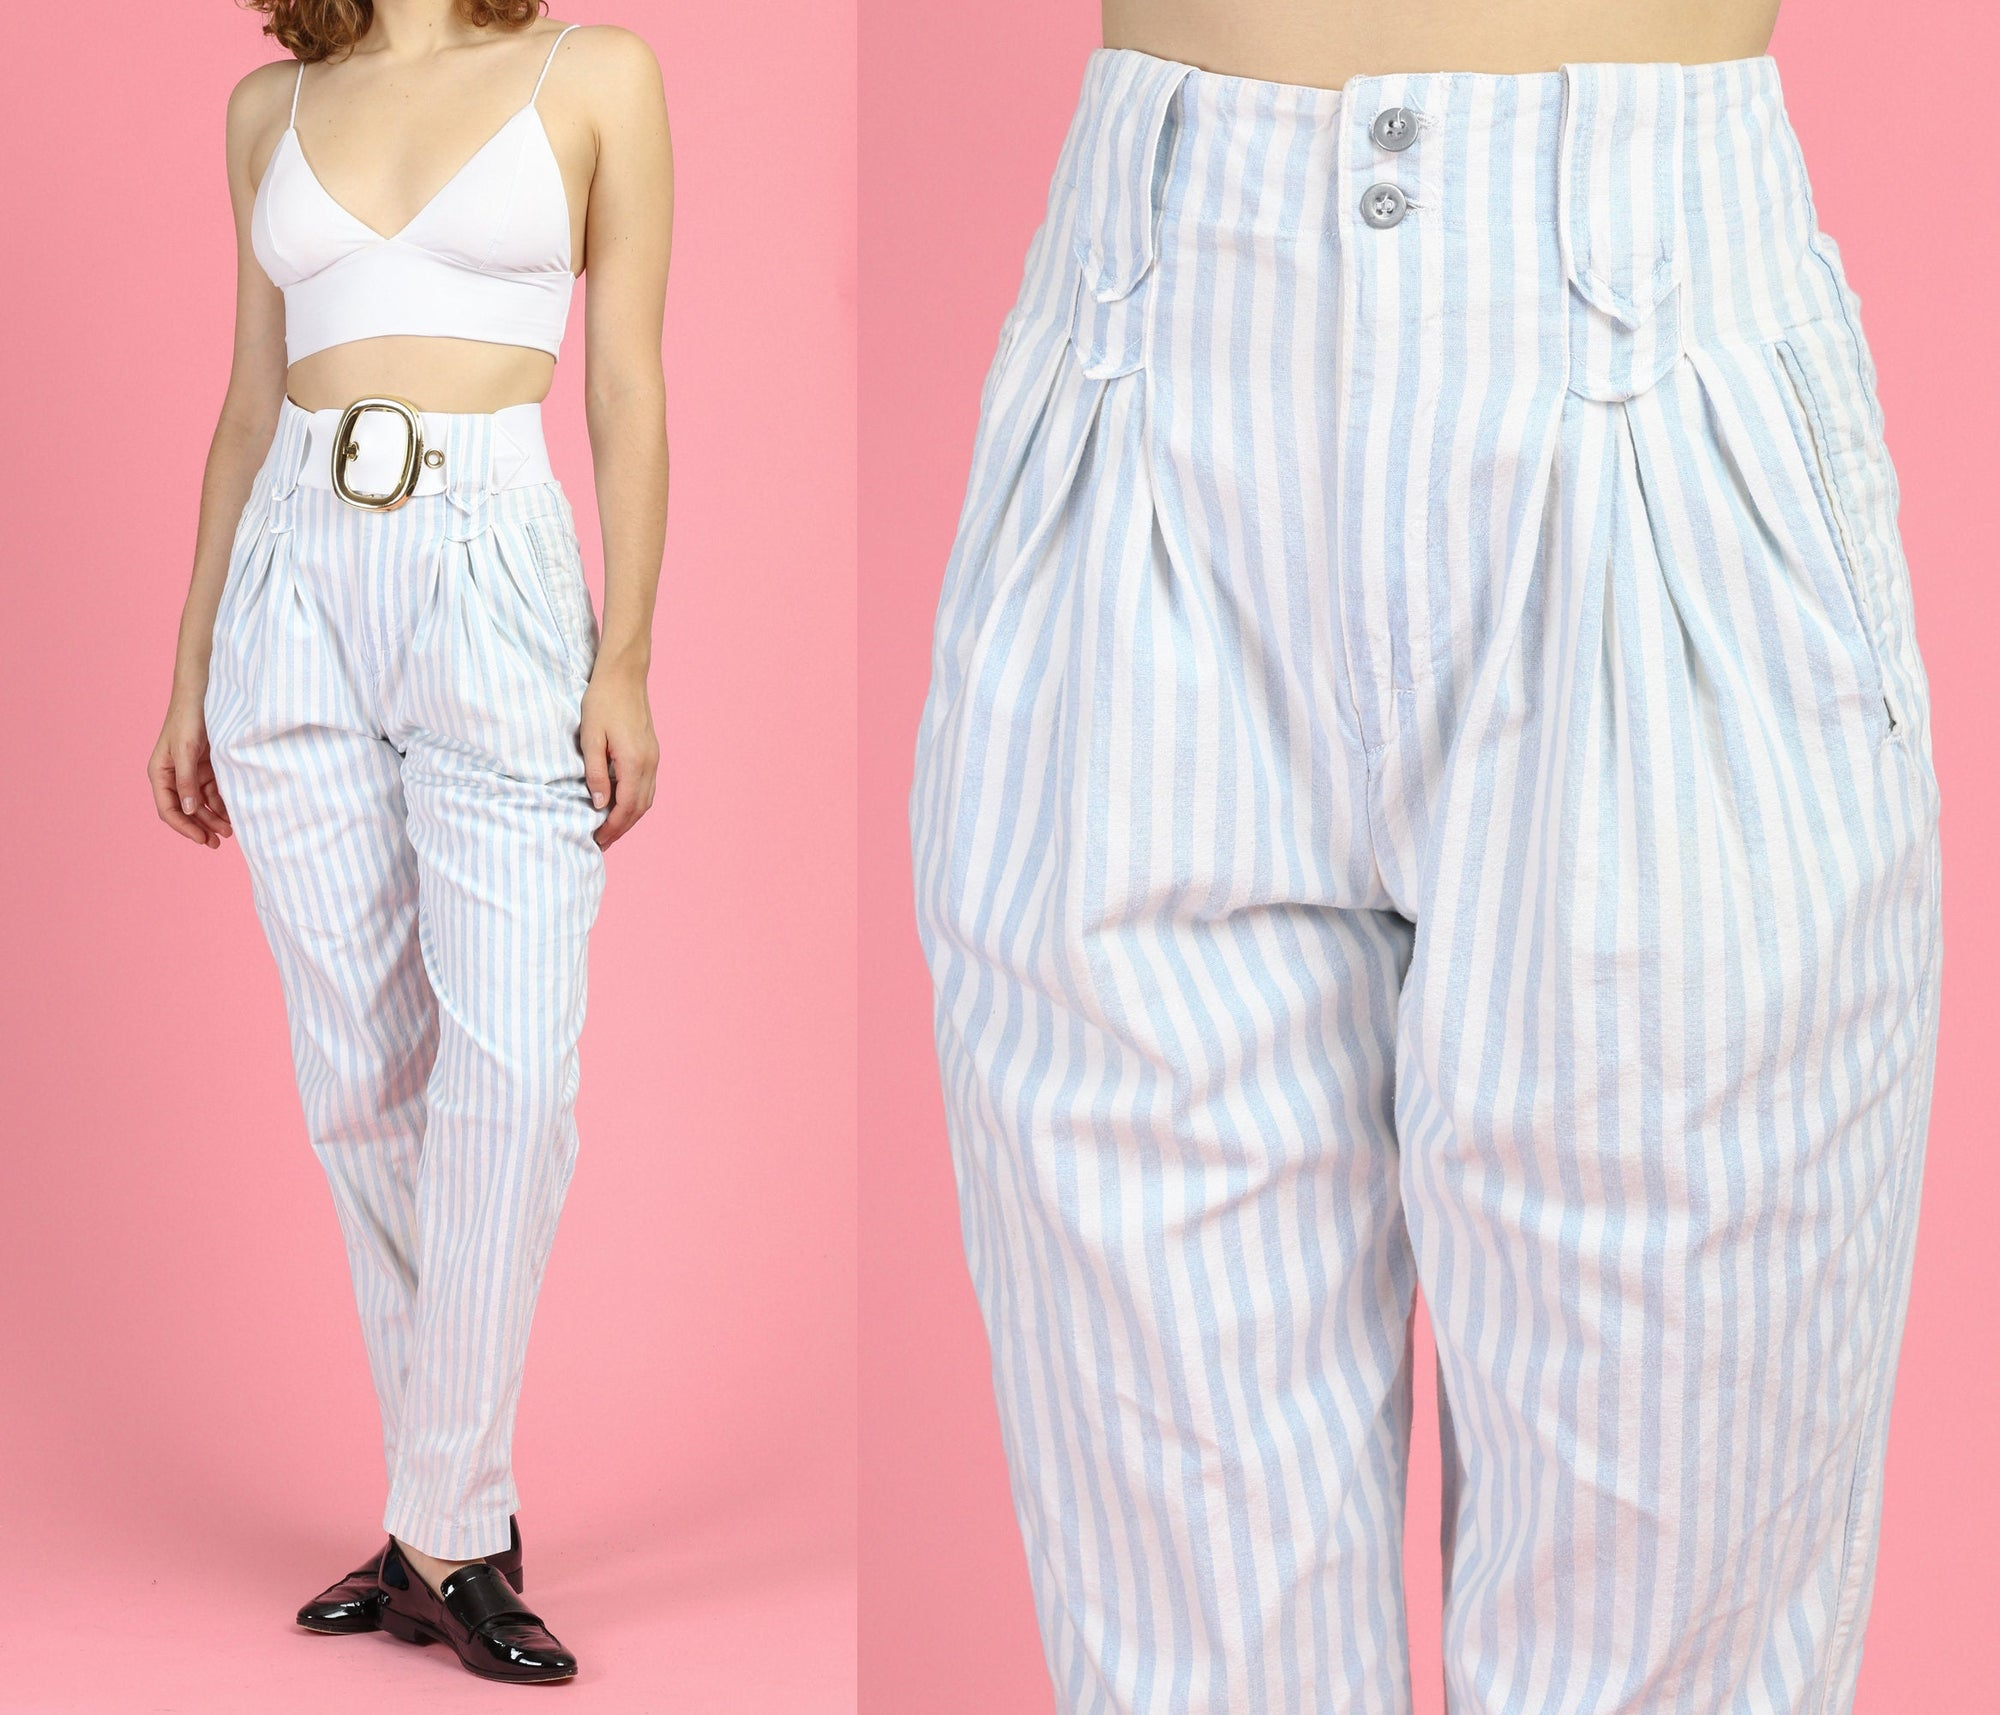 90s Striped Belted Jeans - Small